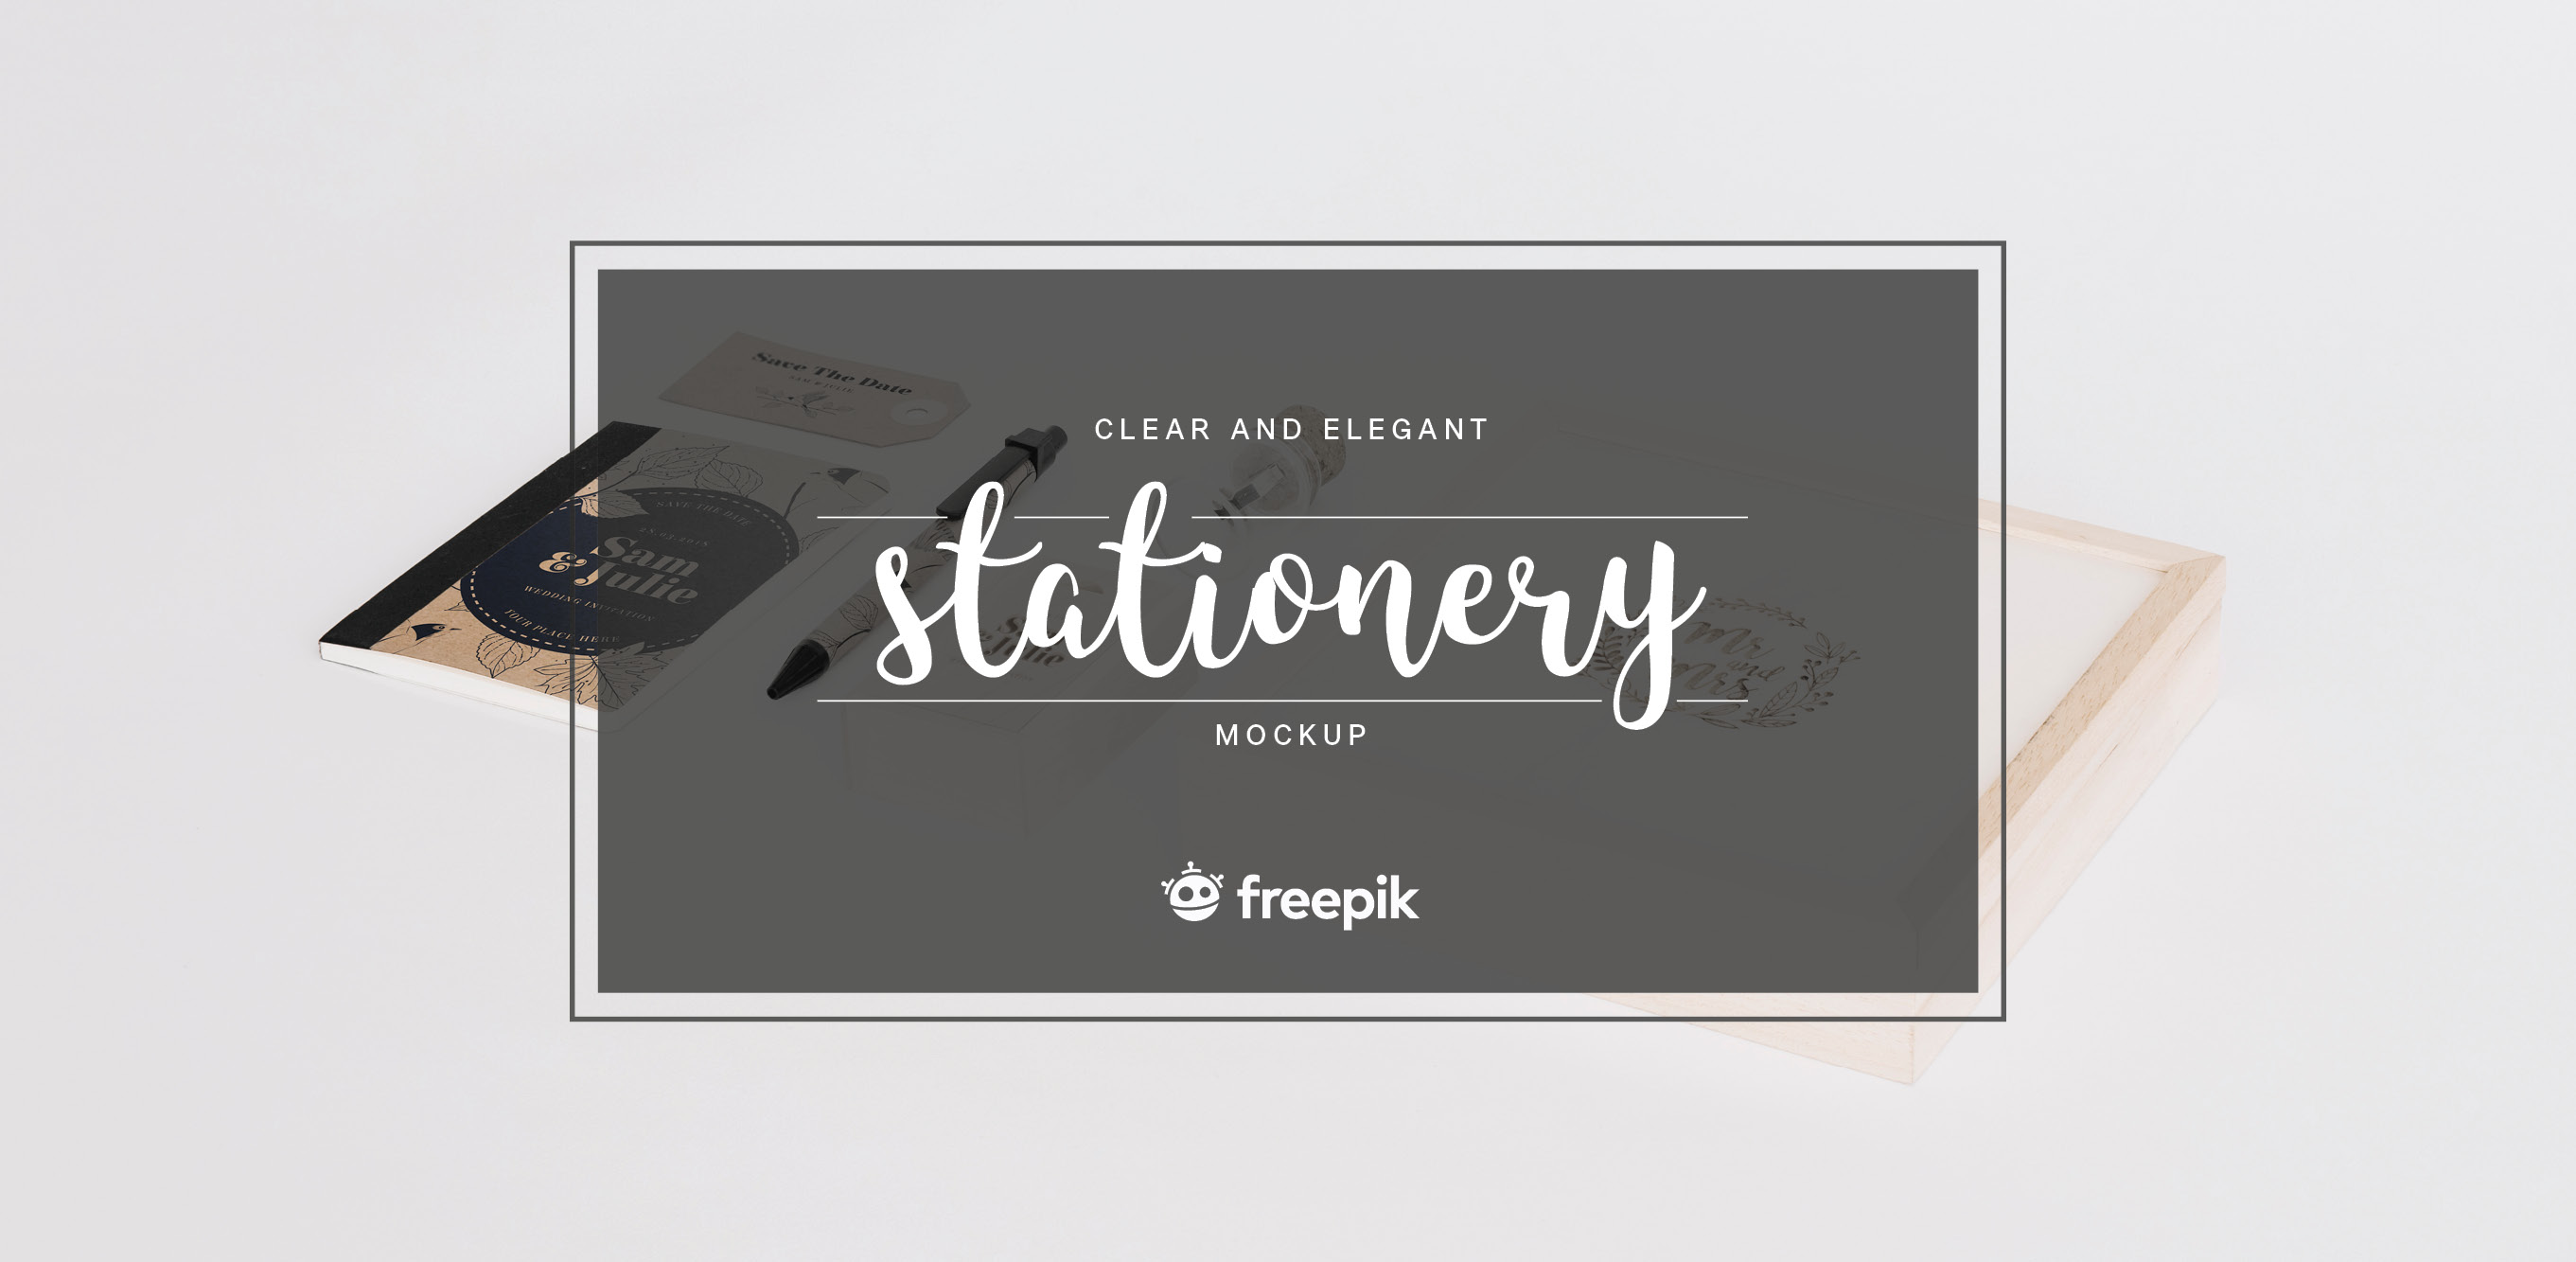 Free Download: Elegant Stationery Mock Up Set